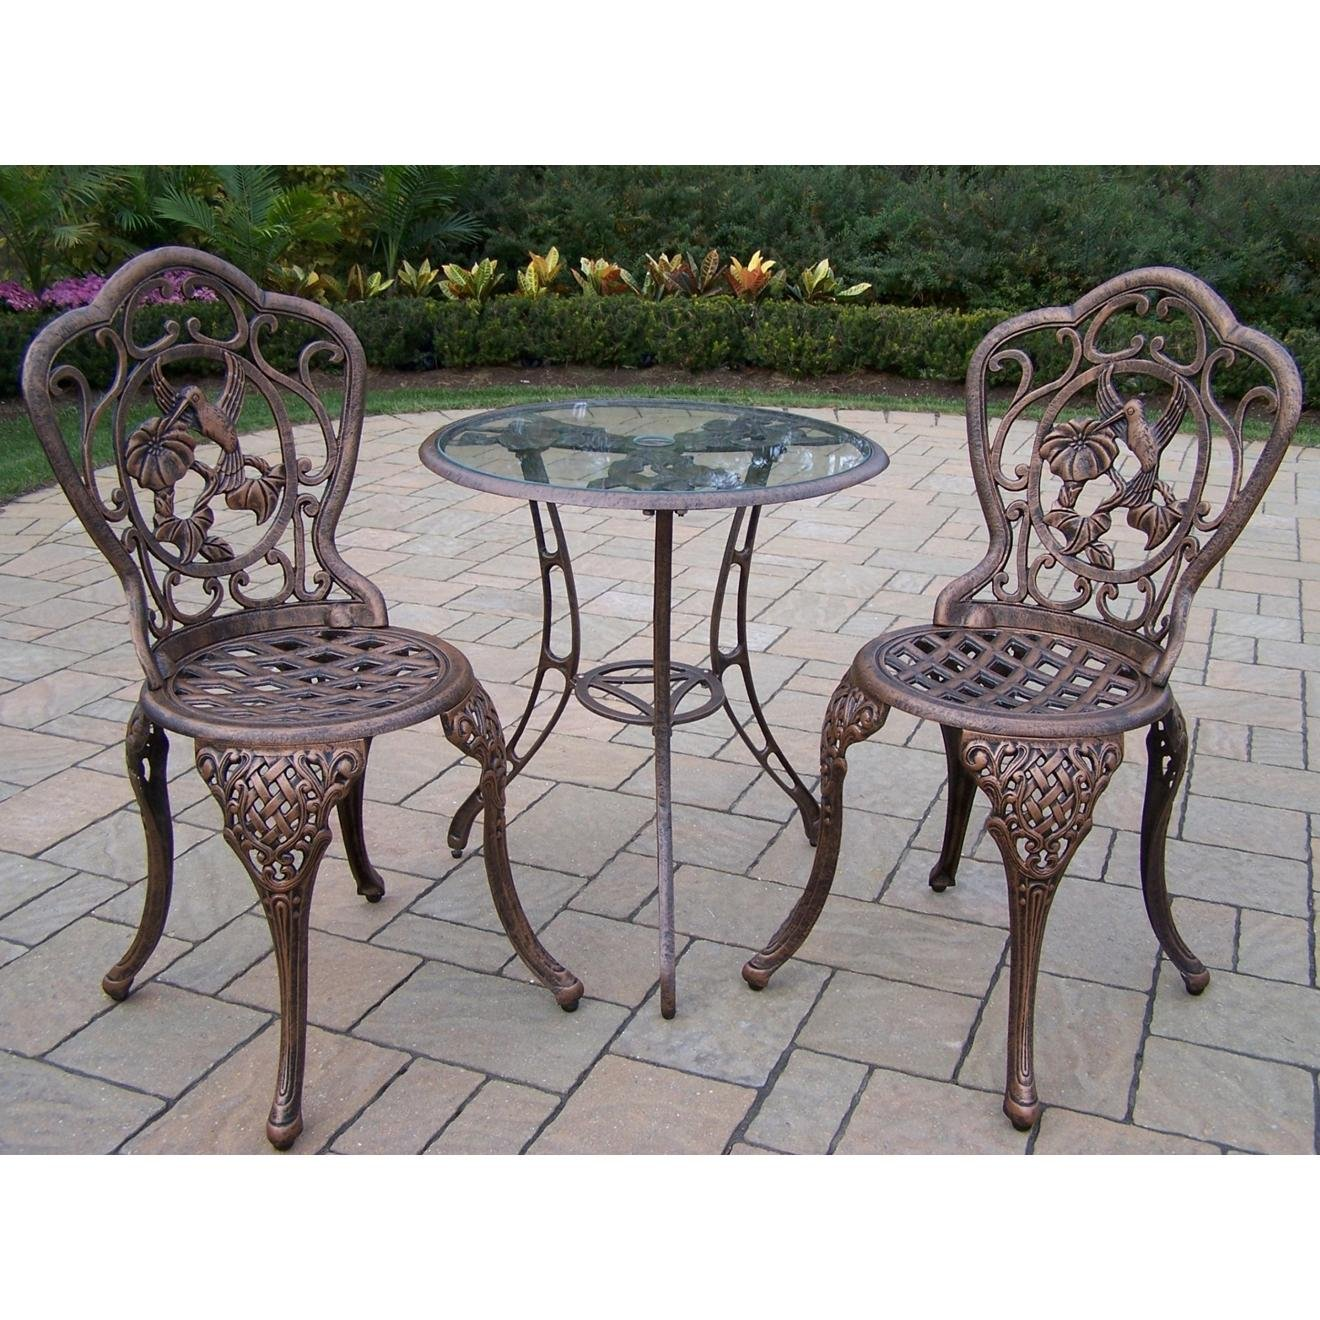 Oakland Living Hummingbird Cast Aluminum 24-Inch Glass Top Table with 3-Piece Bistro Set, Antique Bronze